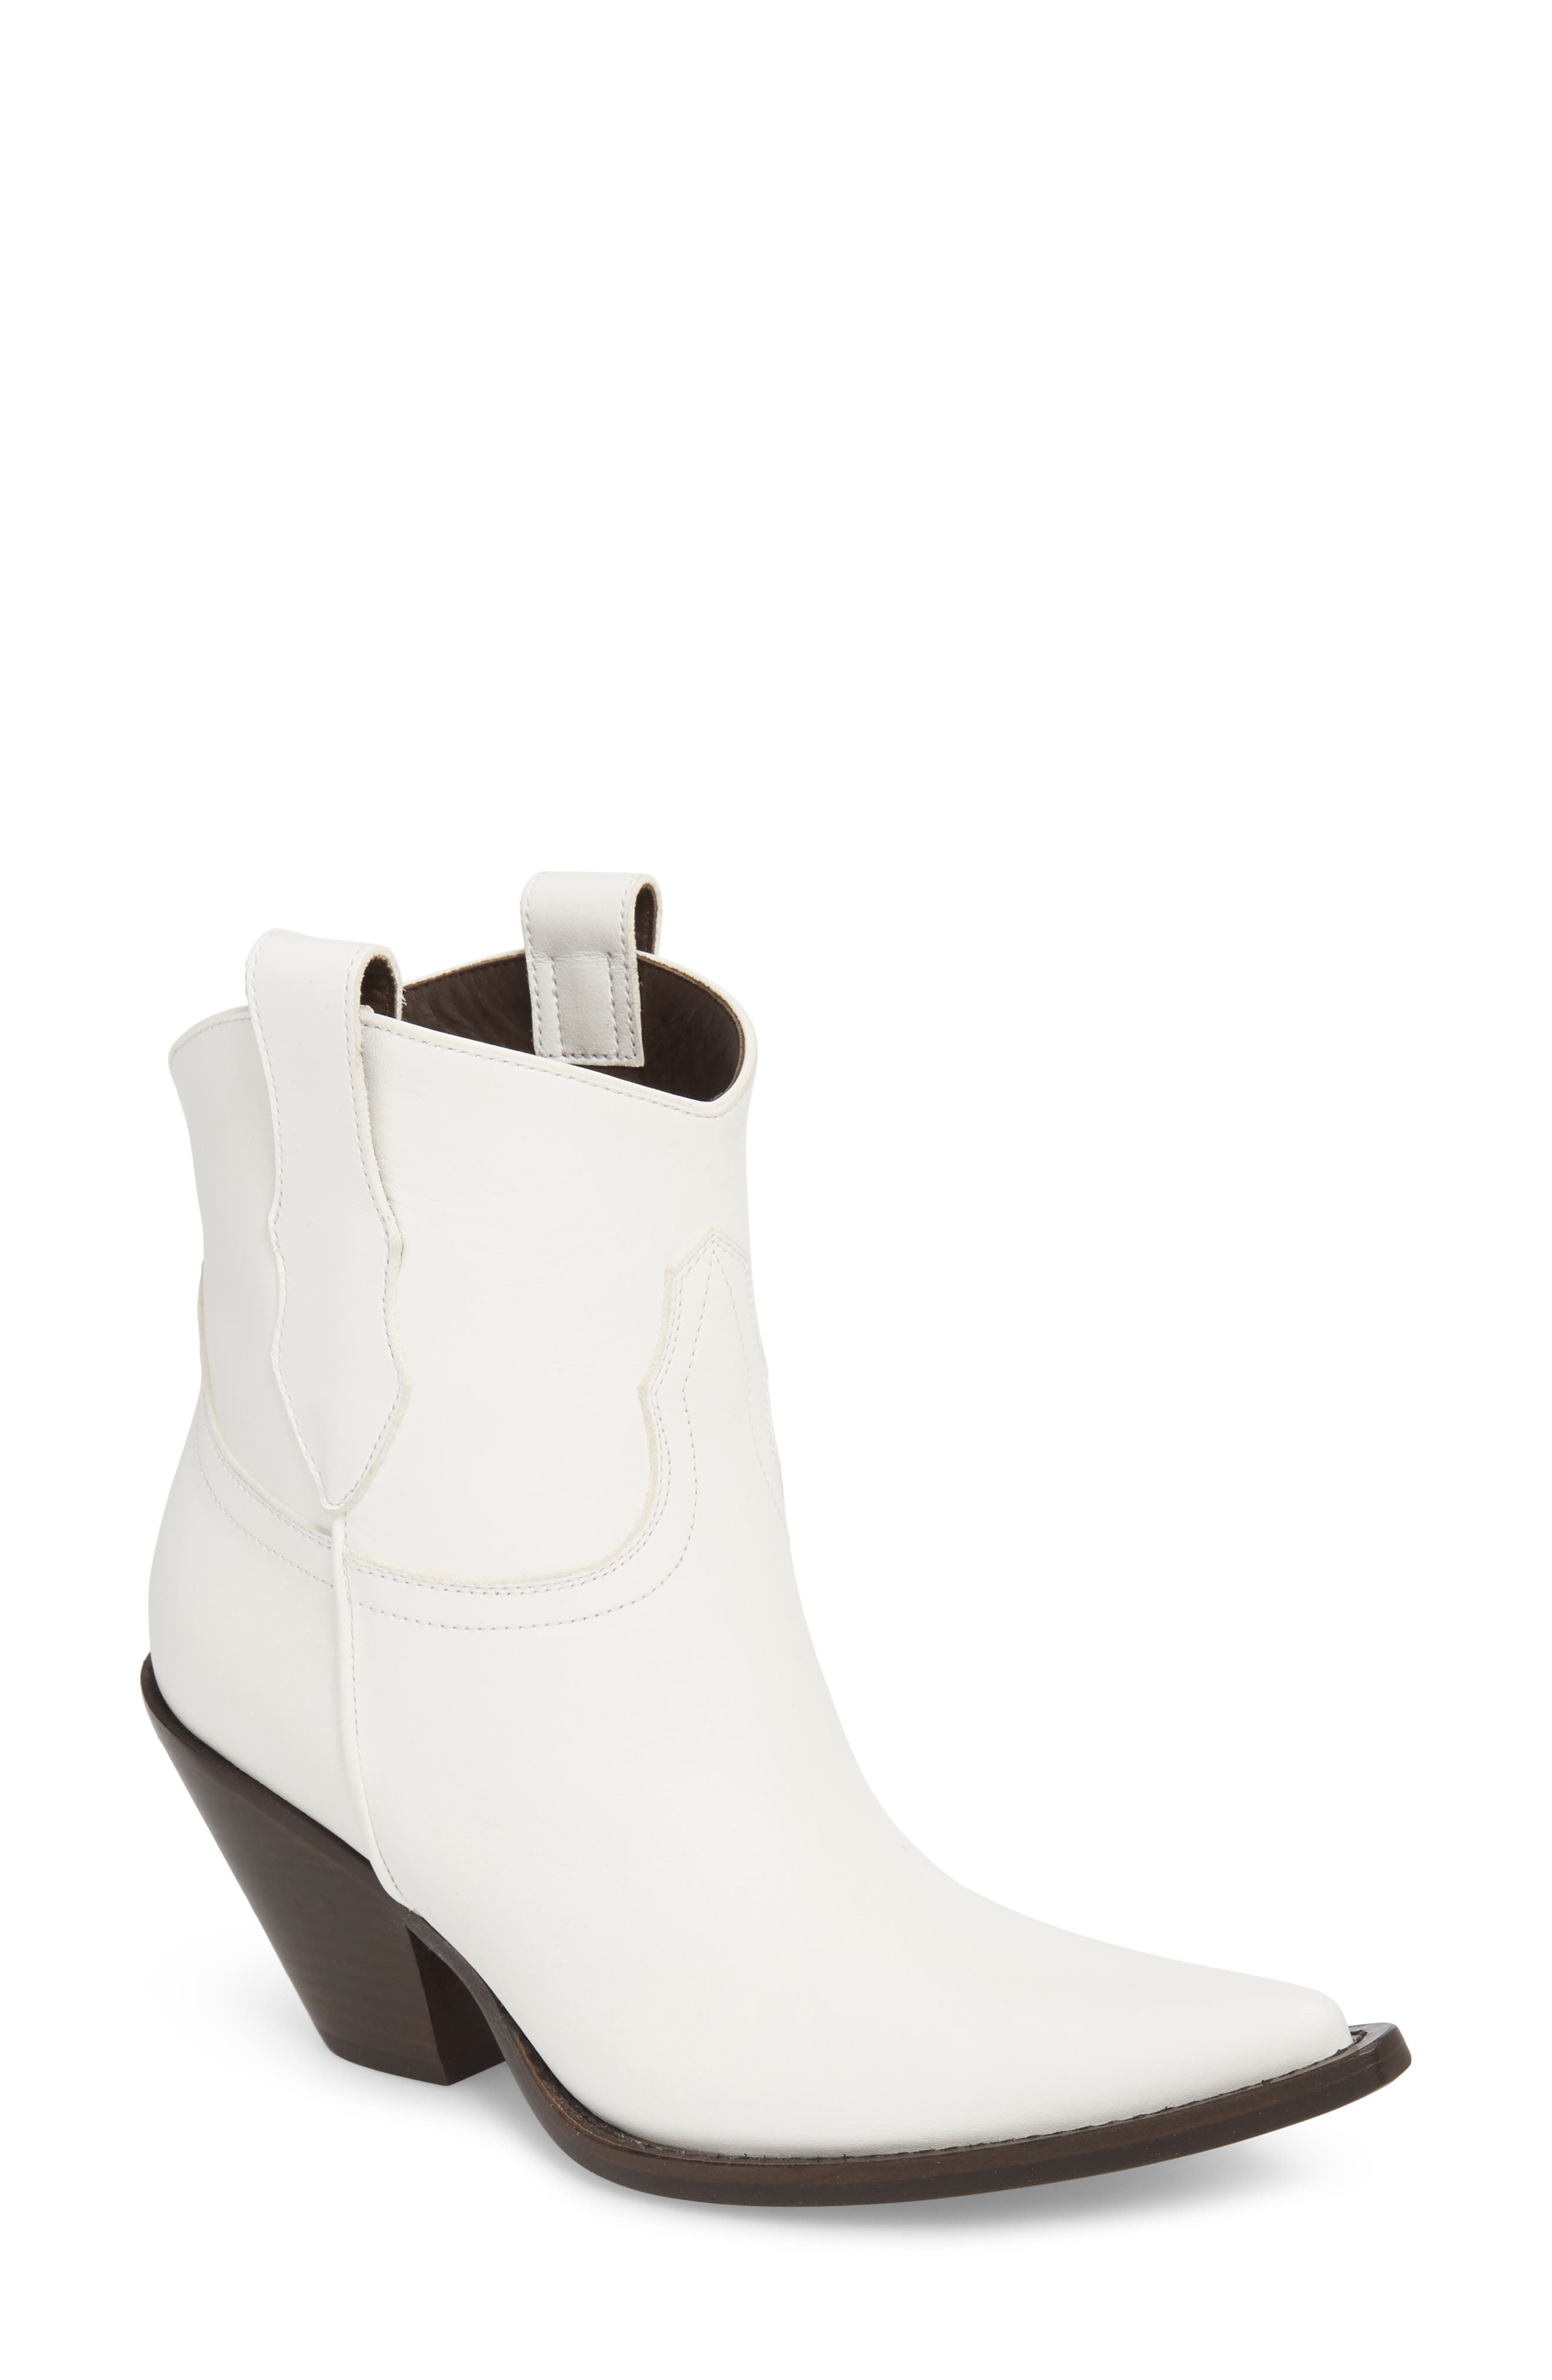 Low Mexas Western Bootie,                         Main,                         color, White